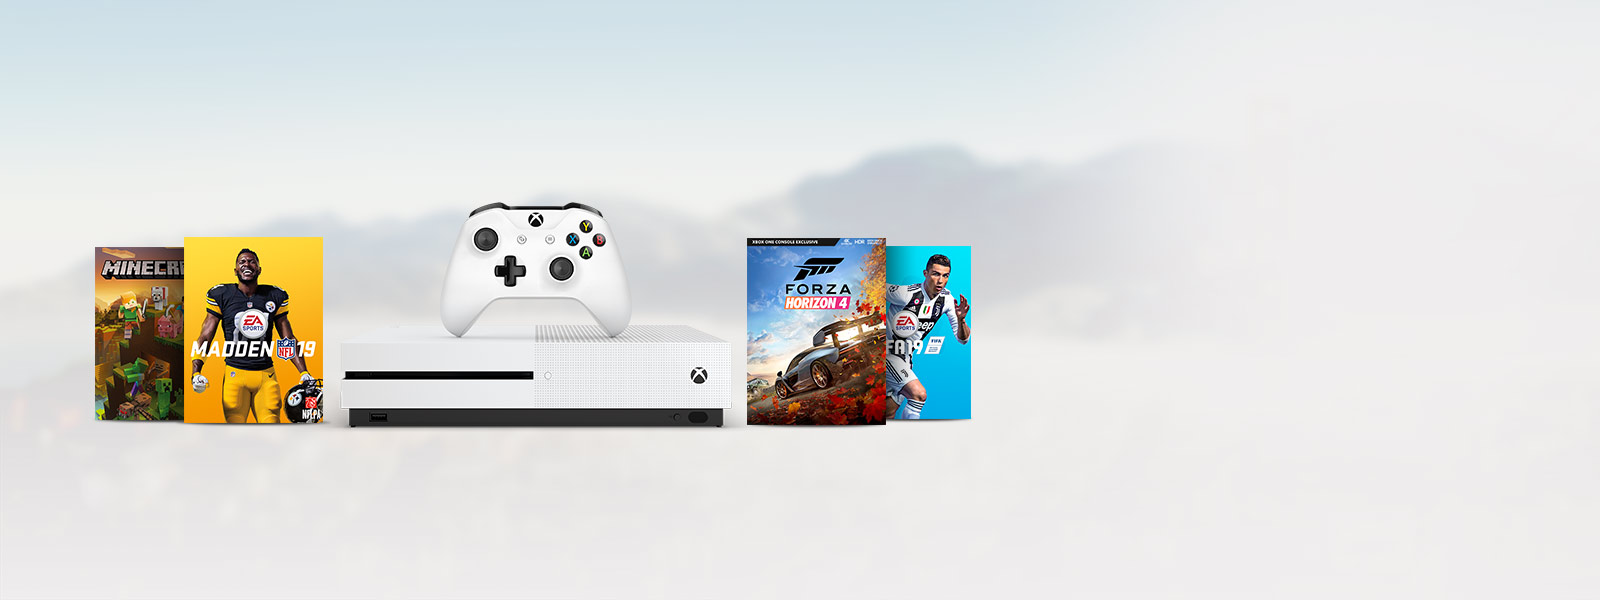 Front view of Xbox One S and controller with Minecraft, Madden 19, Forza horizon 4, FIFA 19 box art